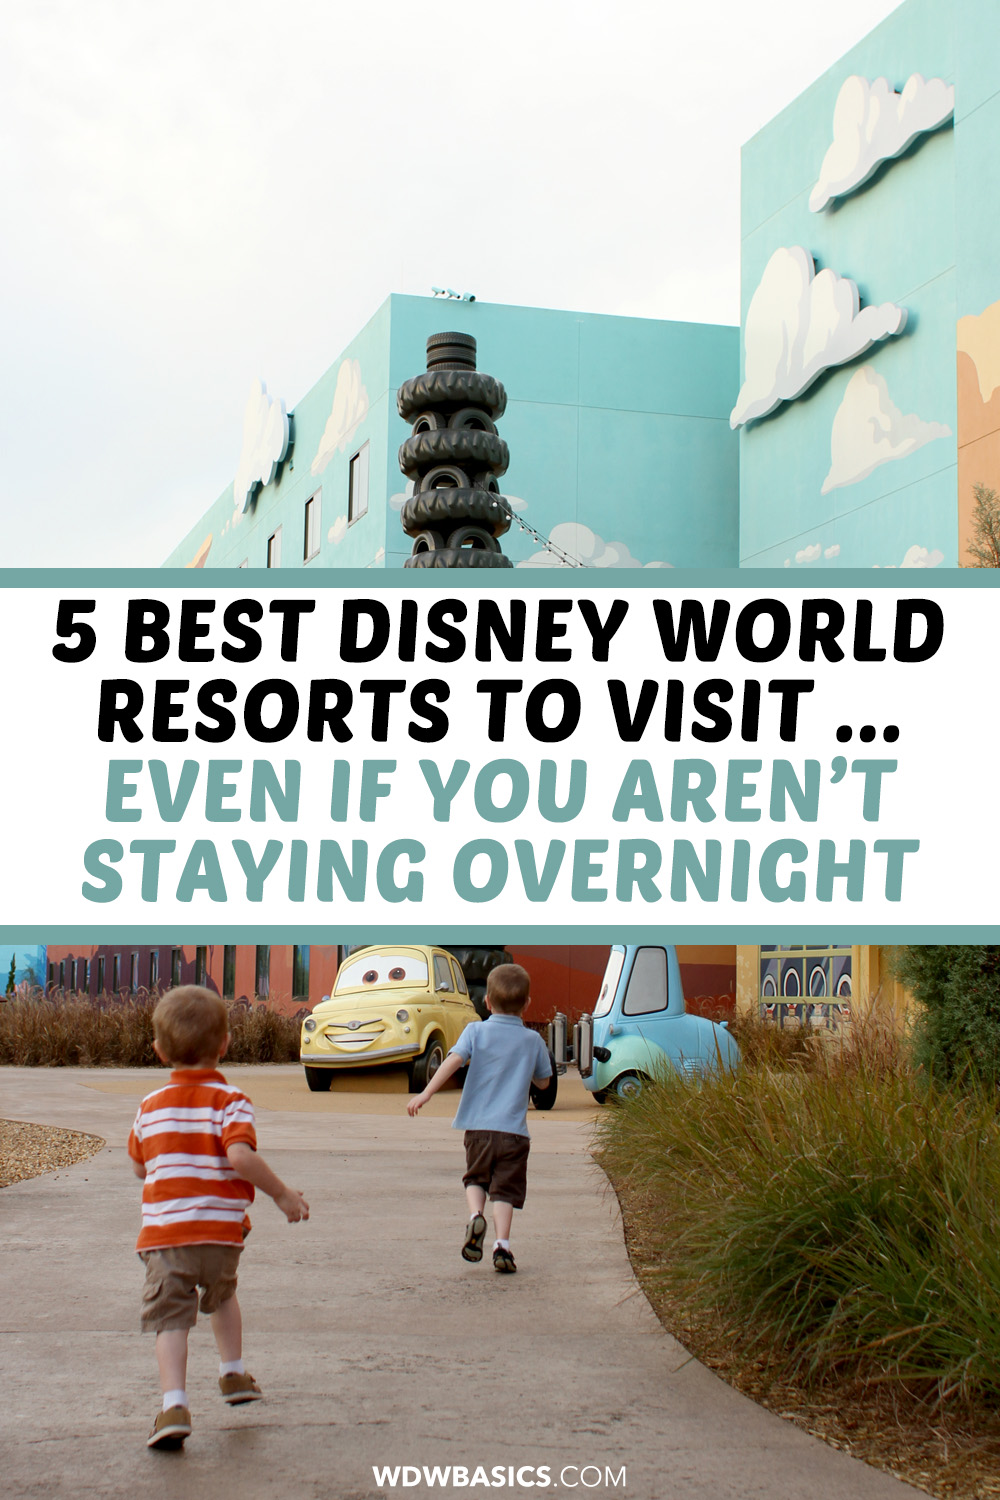 5 Best Disney World Resorts to visit ... even if you aren't staying overnight